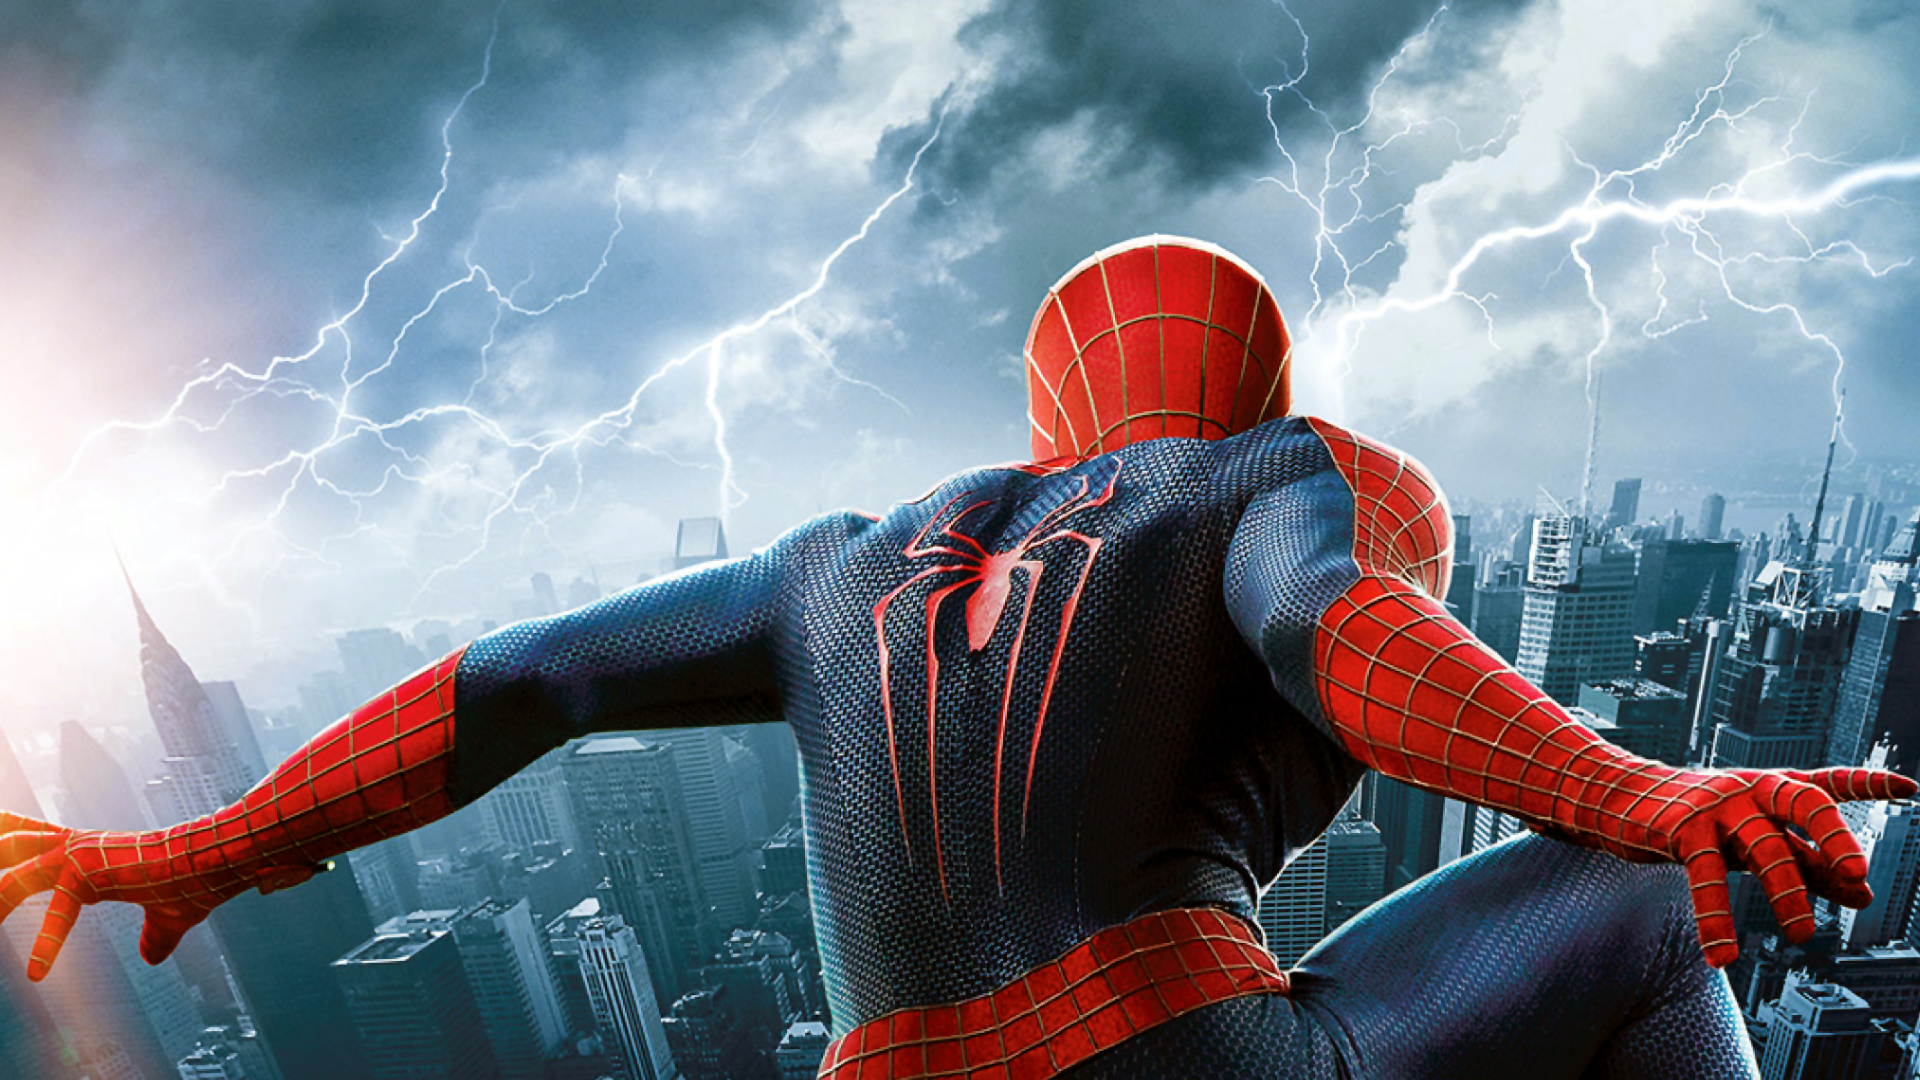 Good Wallpaper Mac Spiderman - 1800f04d6ffa1a9f442de1f625dc0381  Collection_263553.png